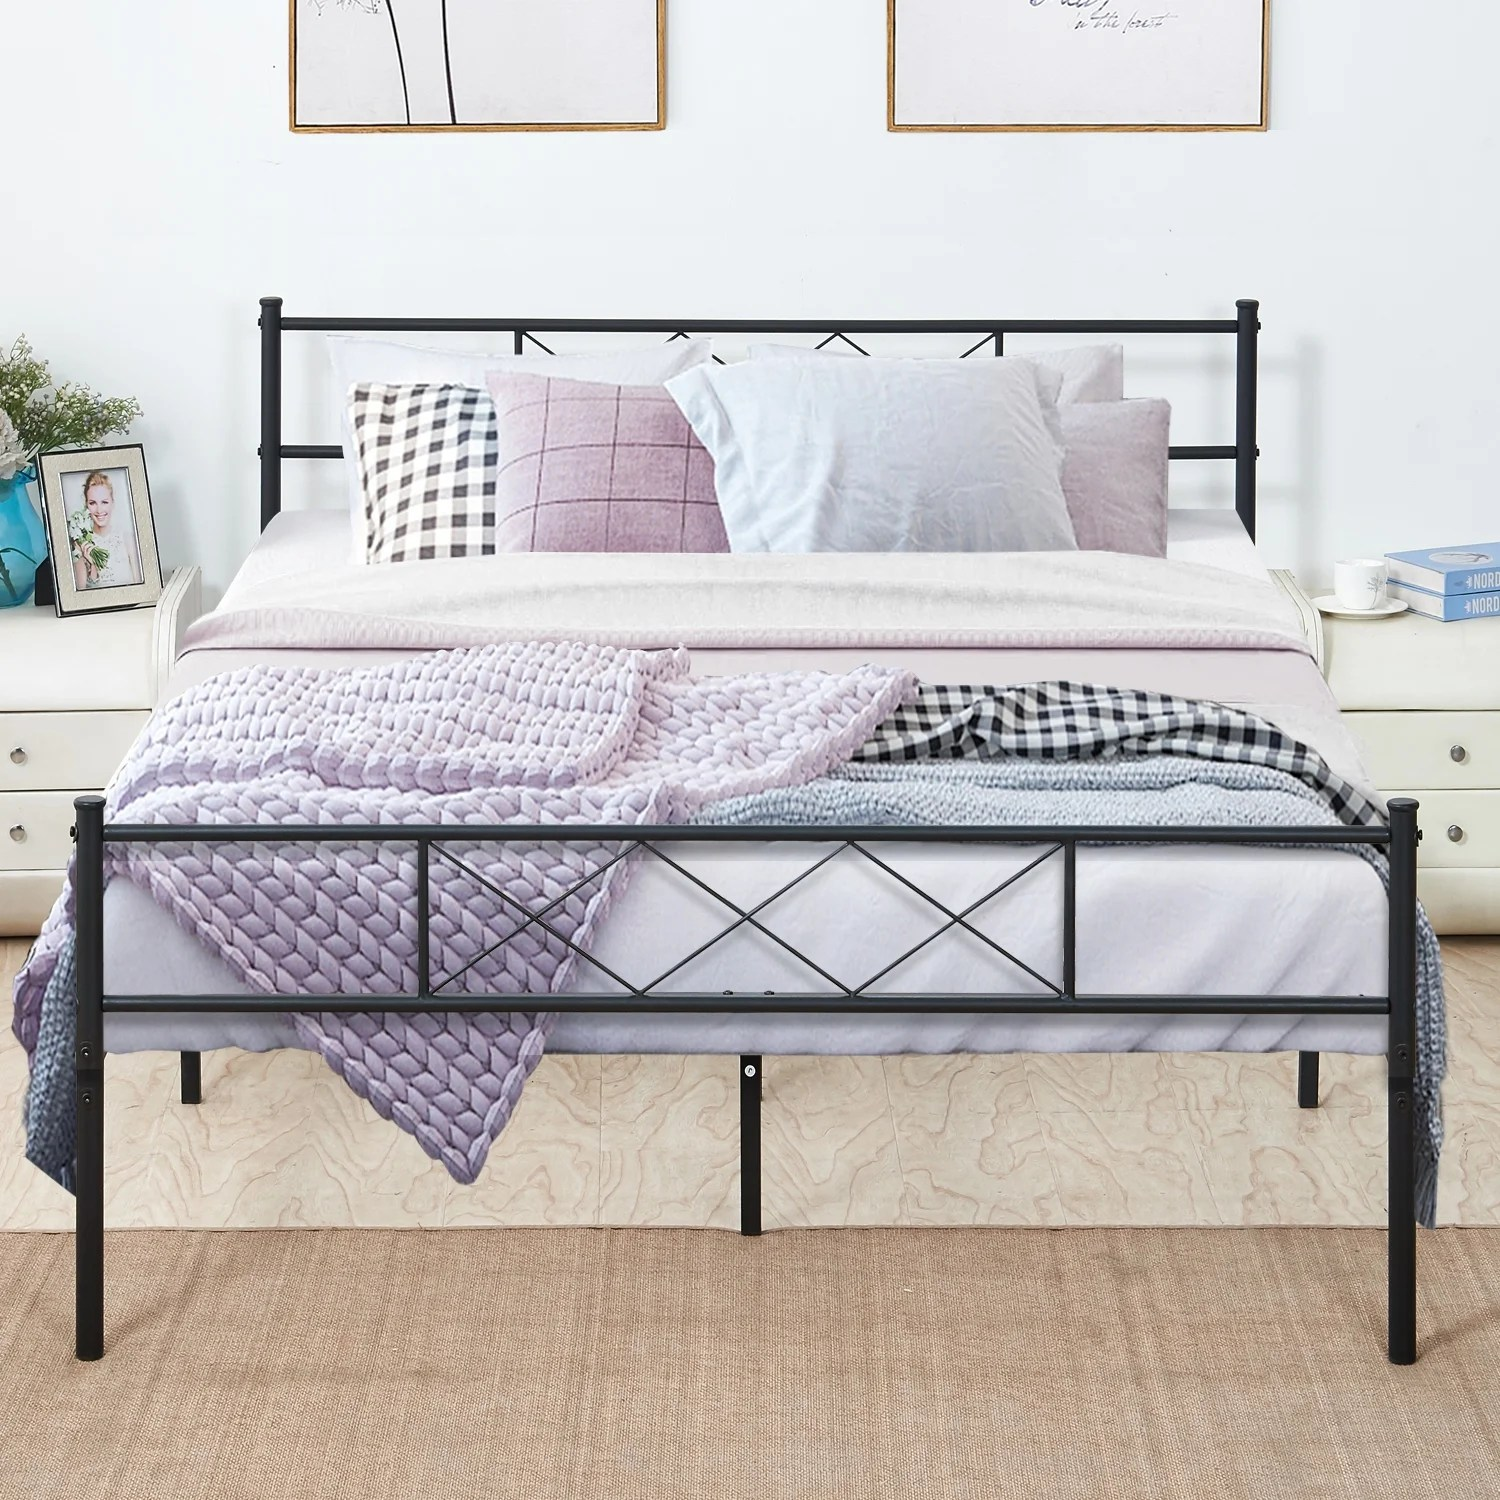 Metal Bed Headboards Vecelo Metal Beds Mattress Foundation Platform Beds With Headboard And Footboard